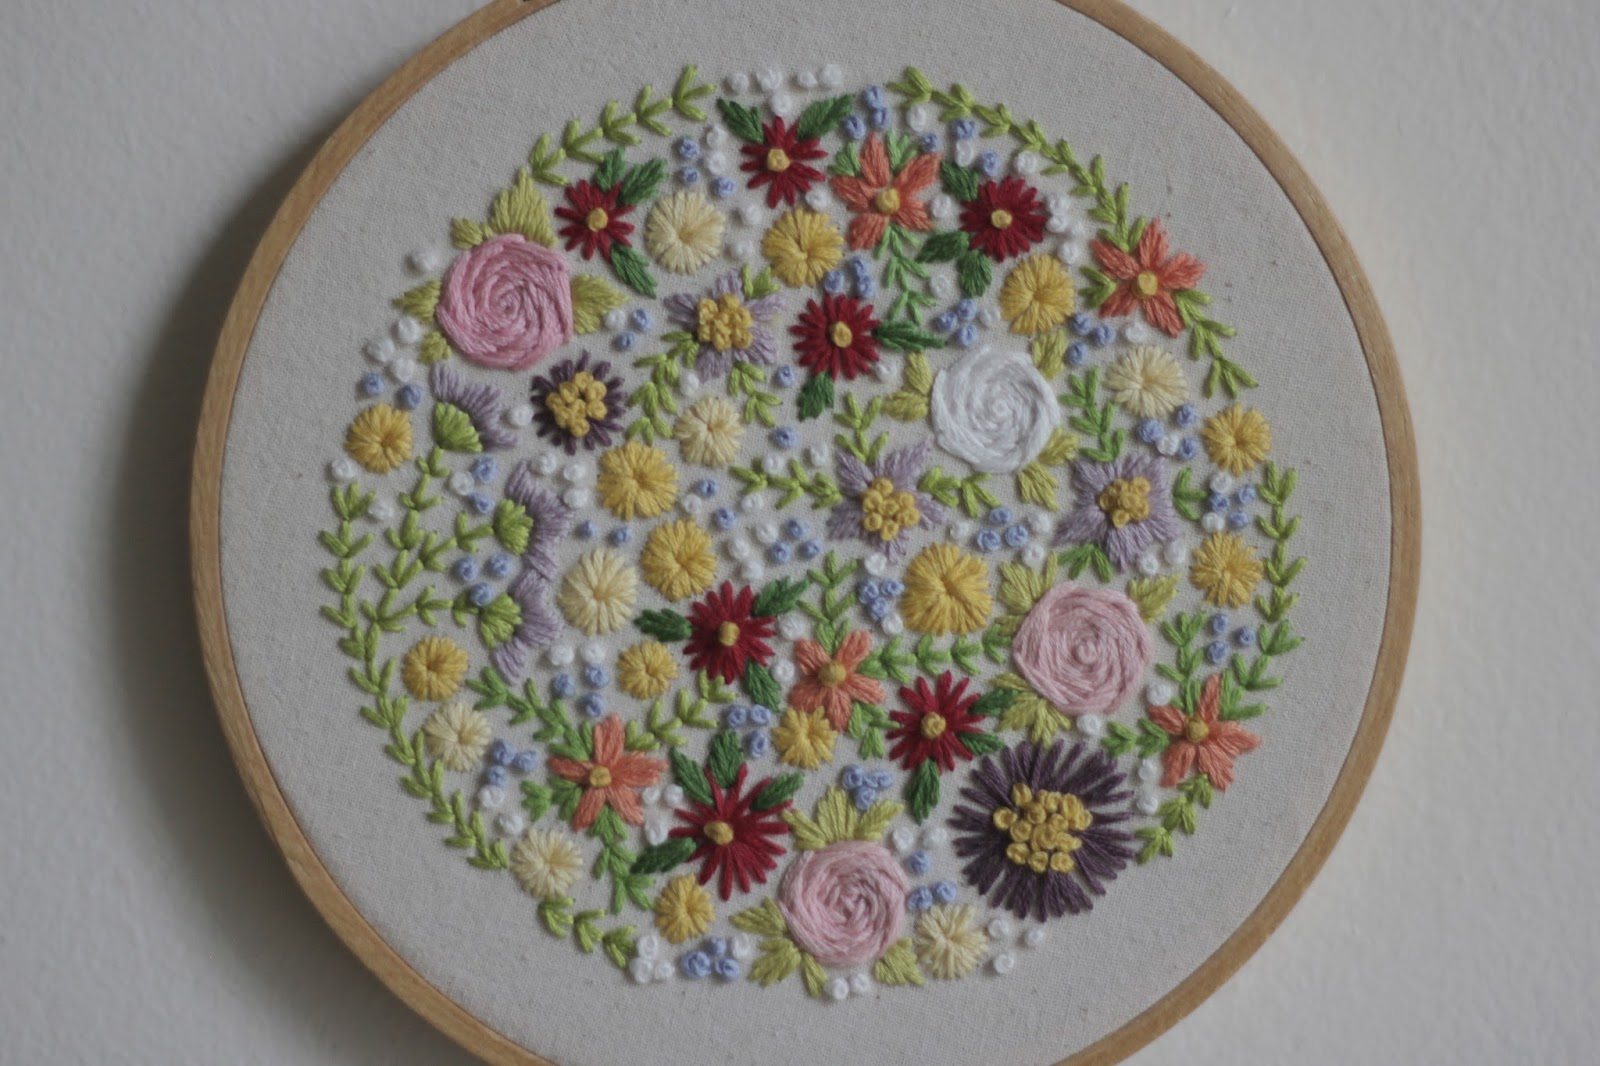 Little projectiles floral embroidery